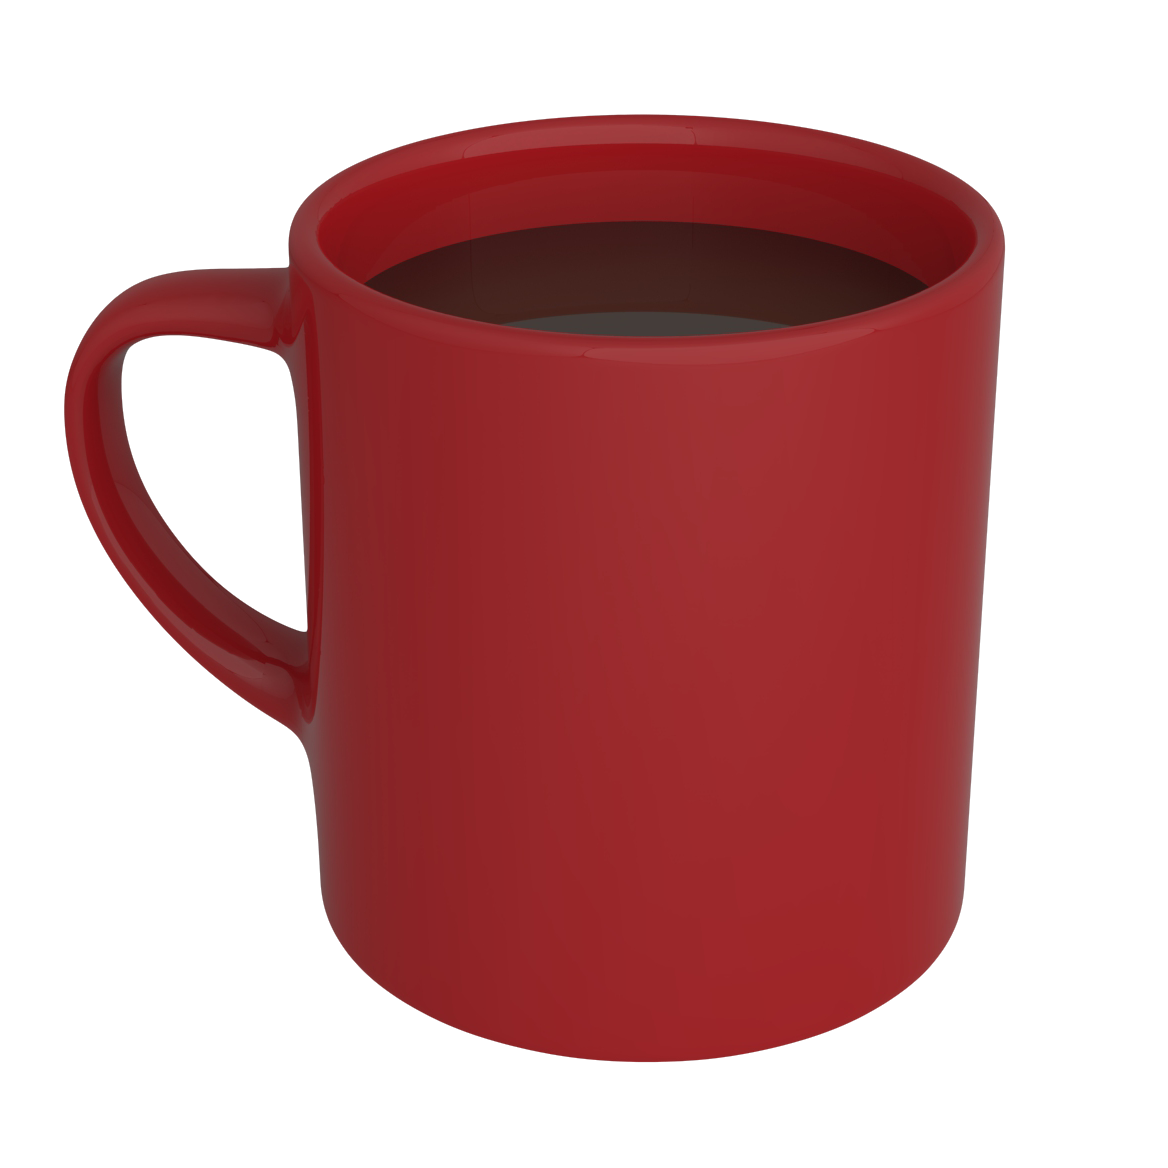 1168x1168 Coffee Mug 3d 3 Vector Eps Free Download, Logo, Icons, Clipart